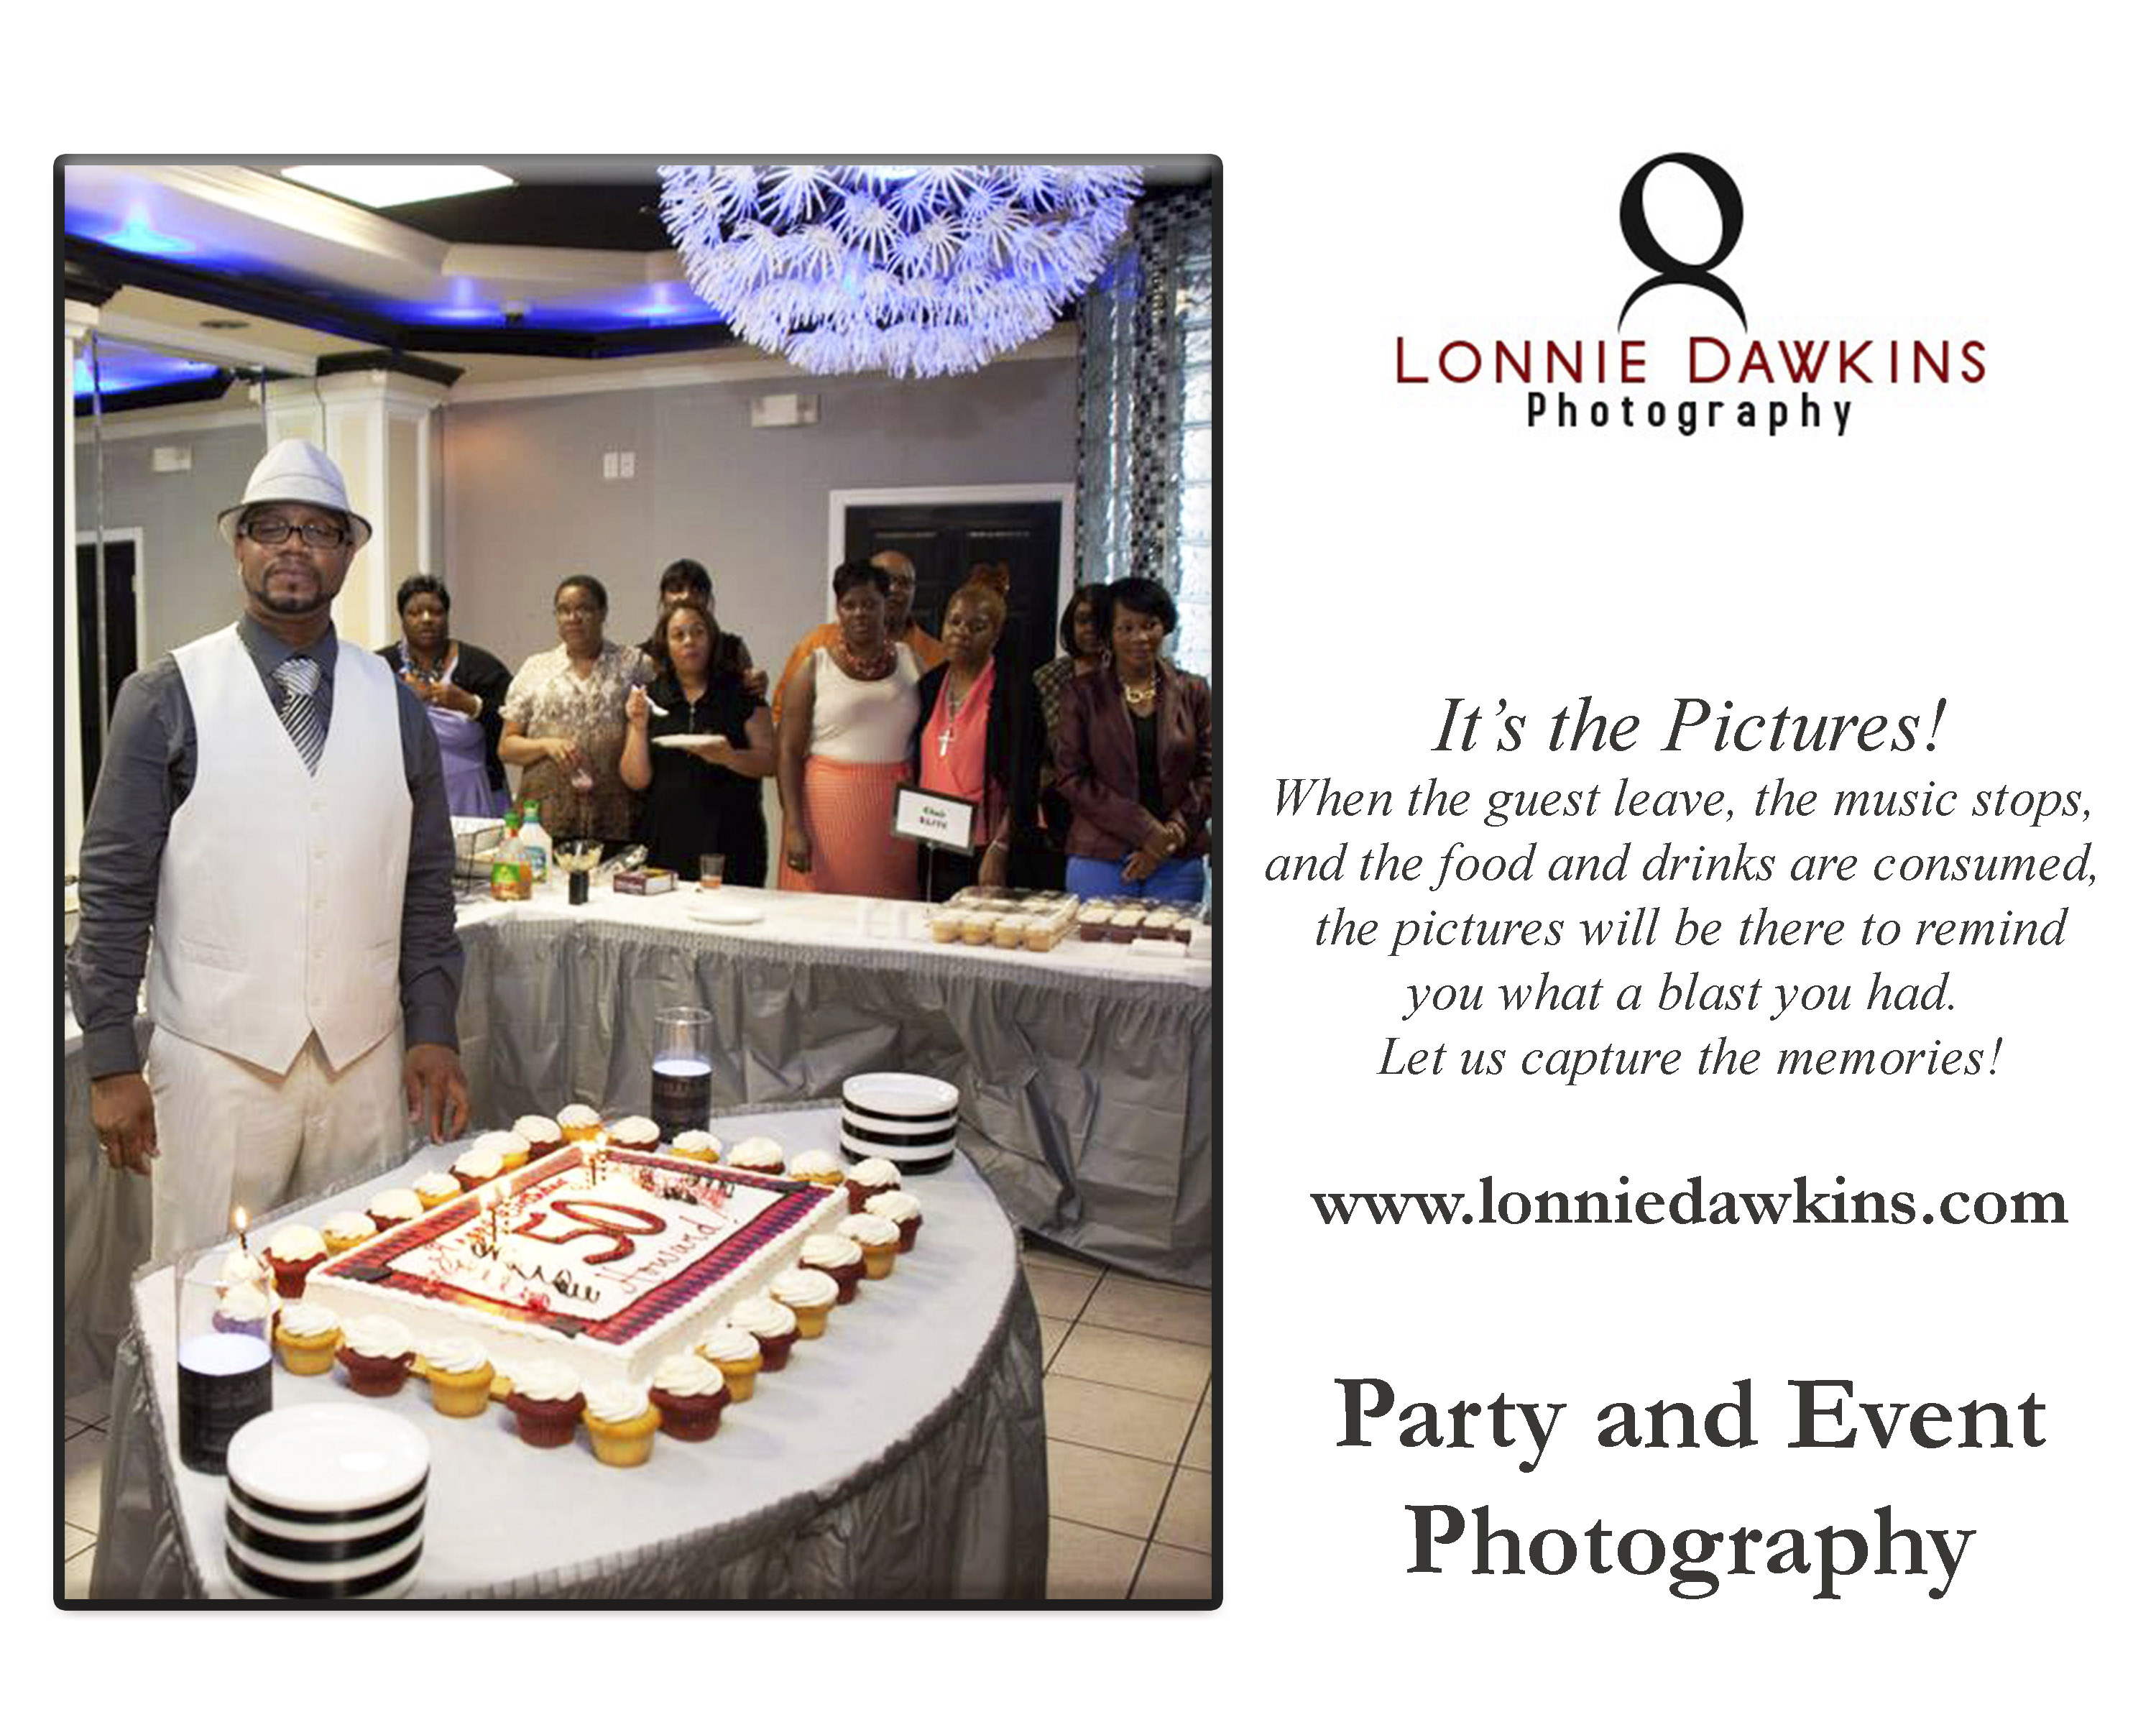 Party and event pictures